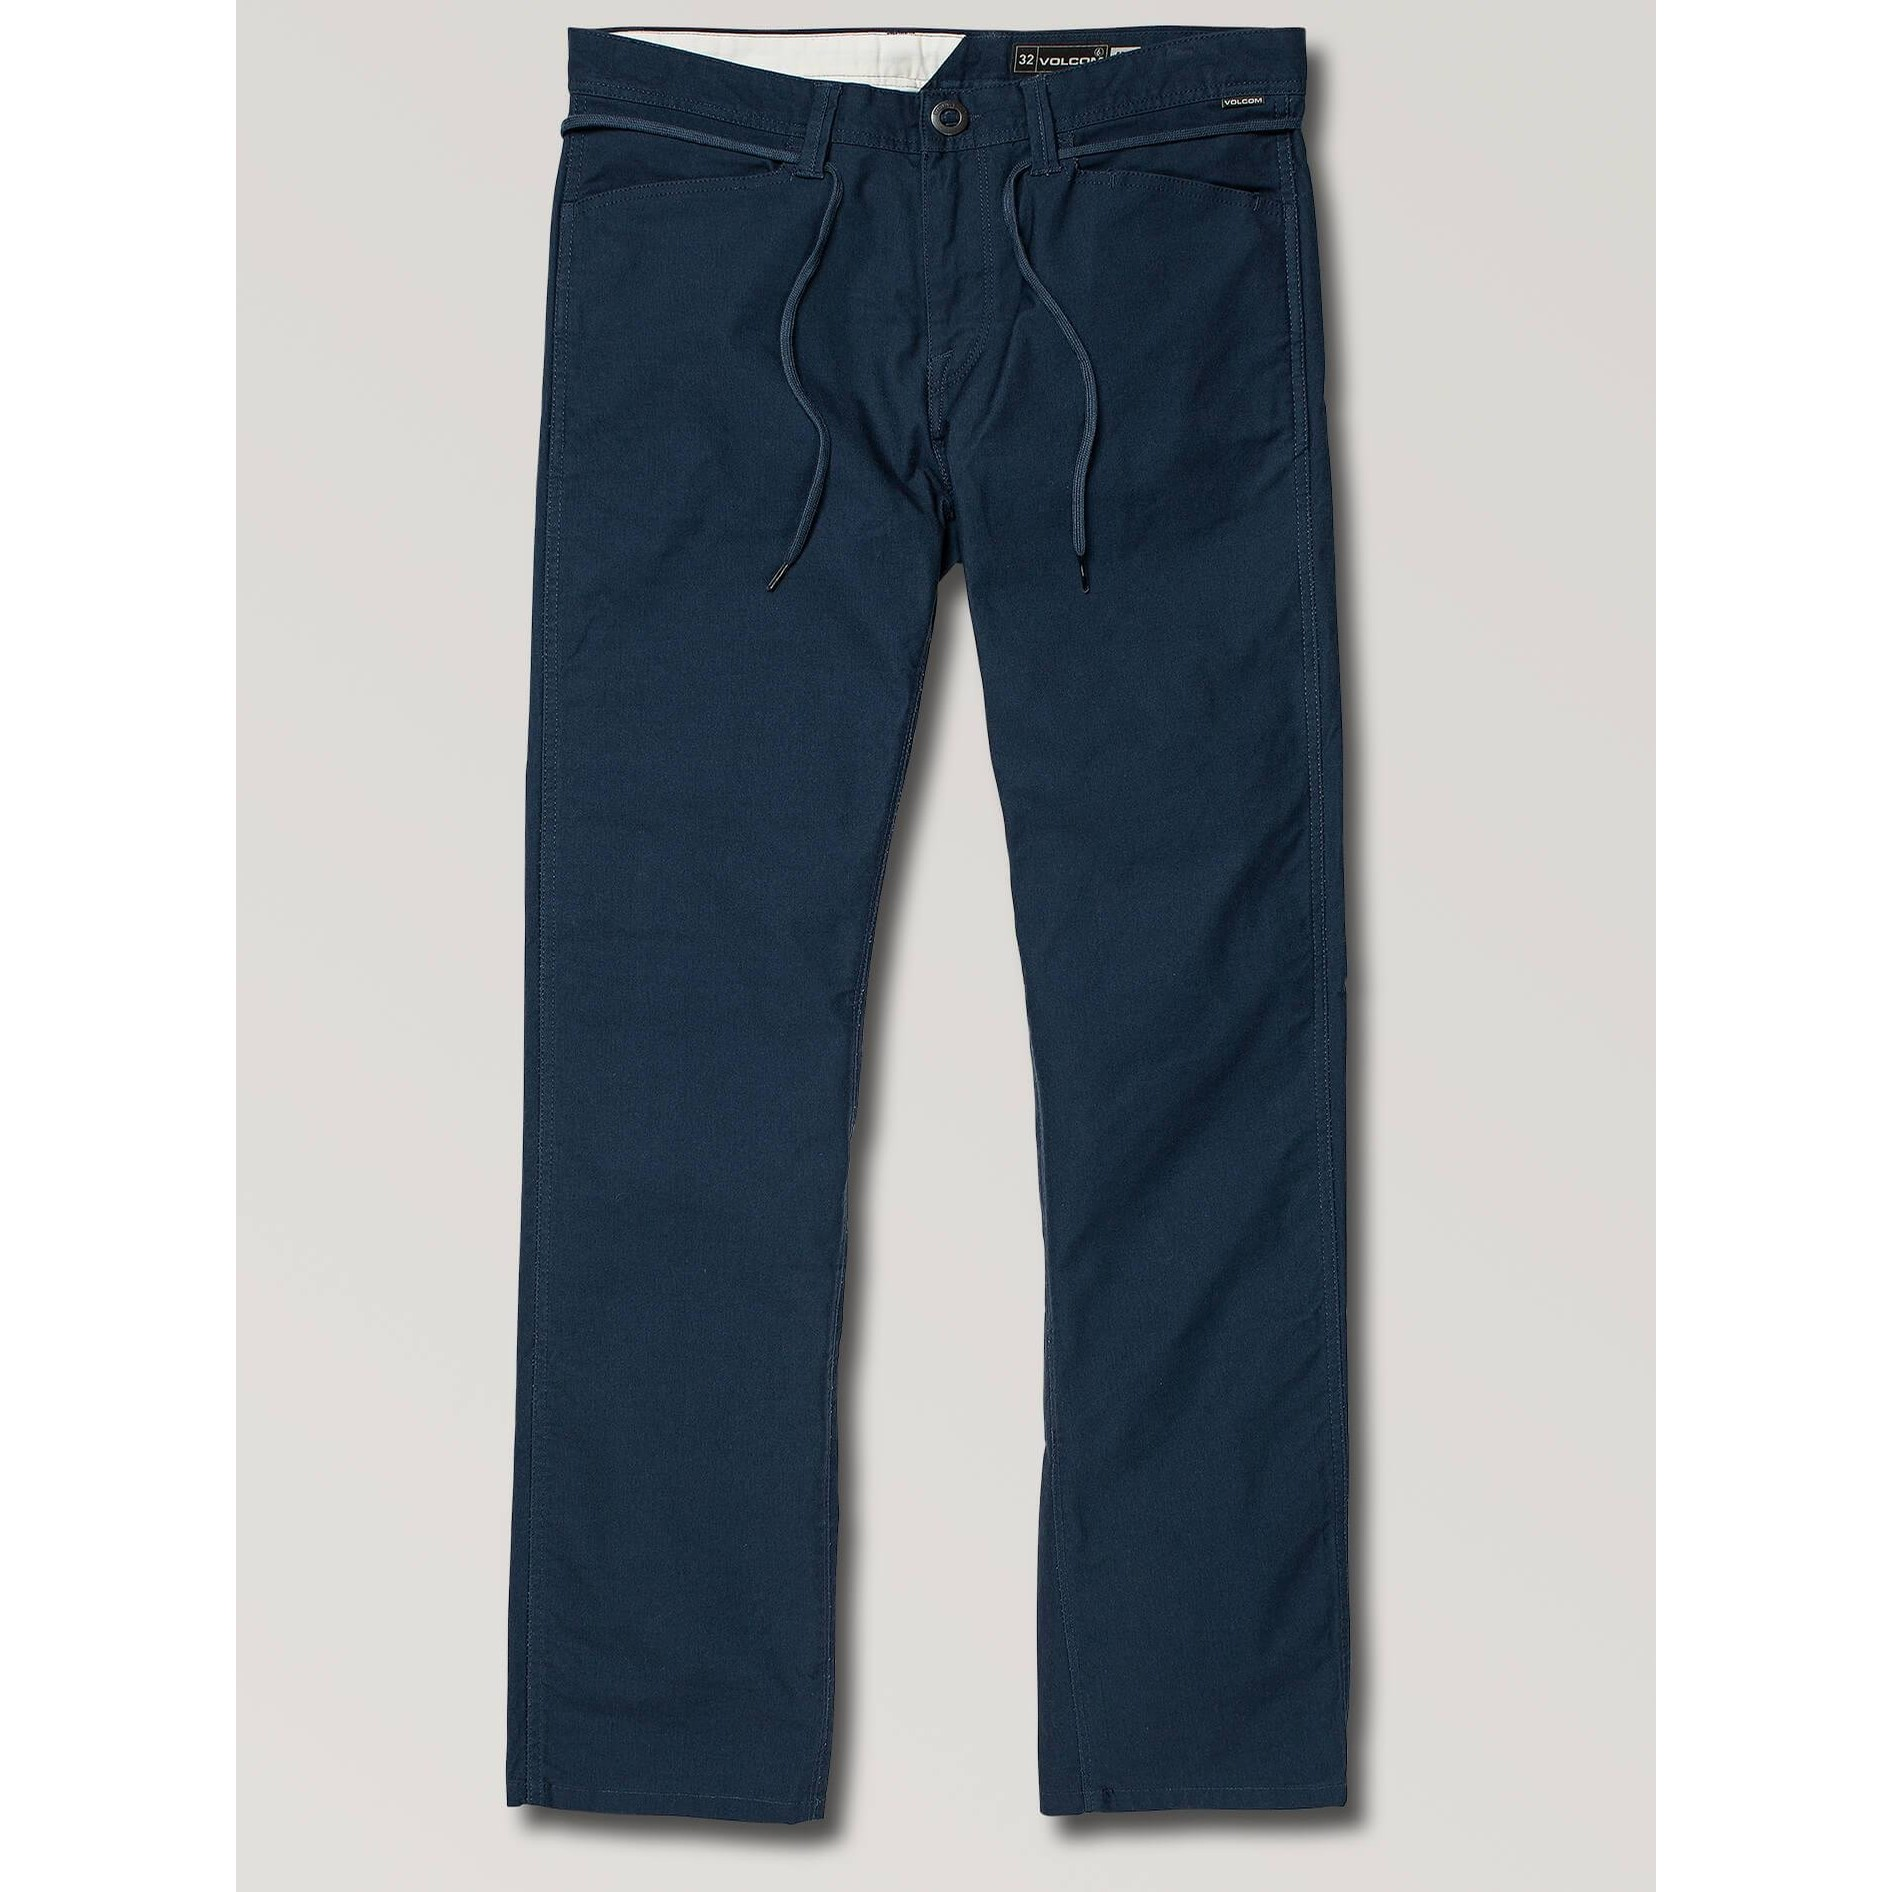 VSM Gritter Plus Pants (indigo)